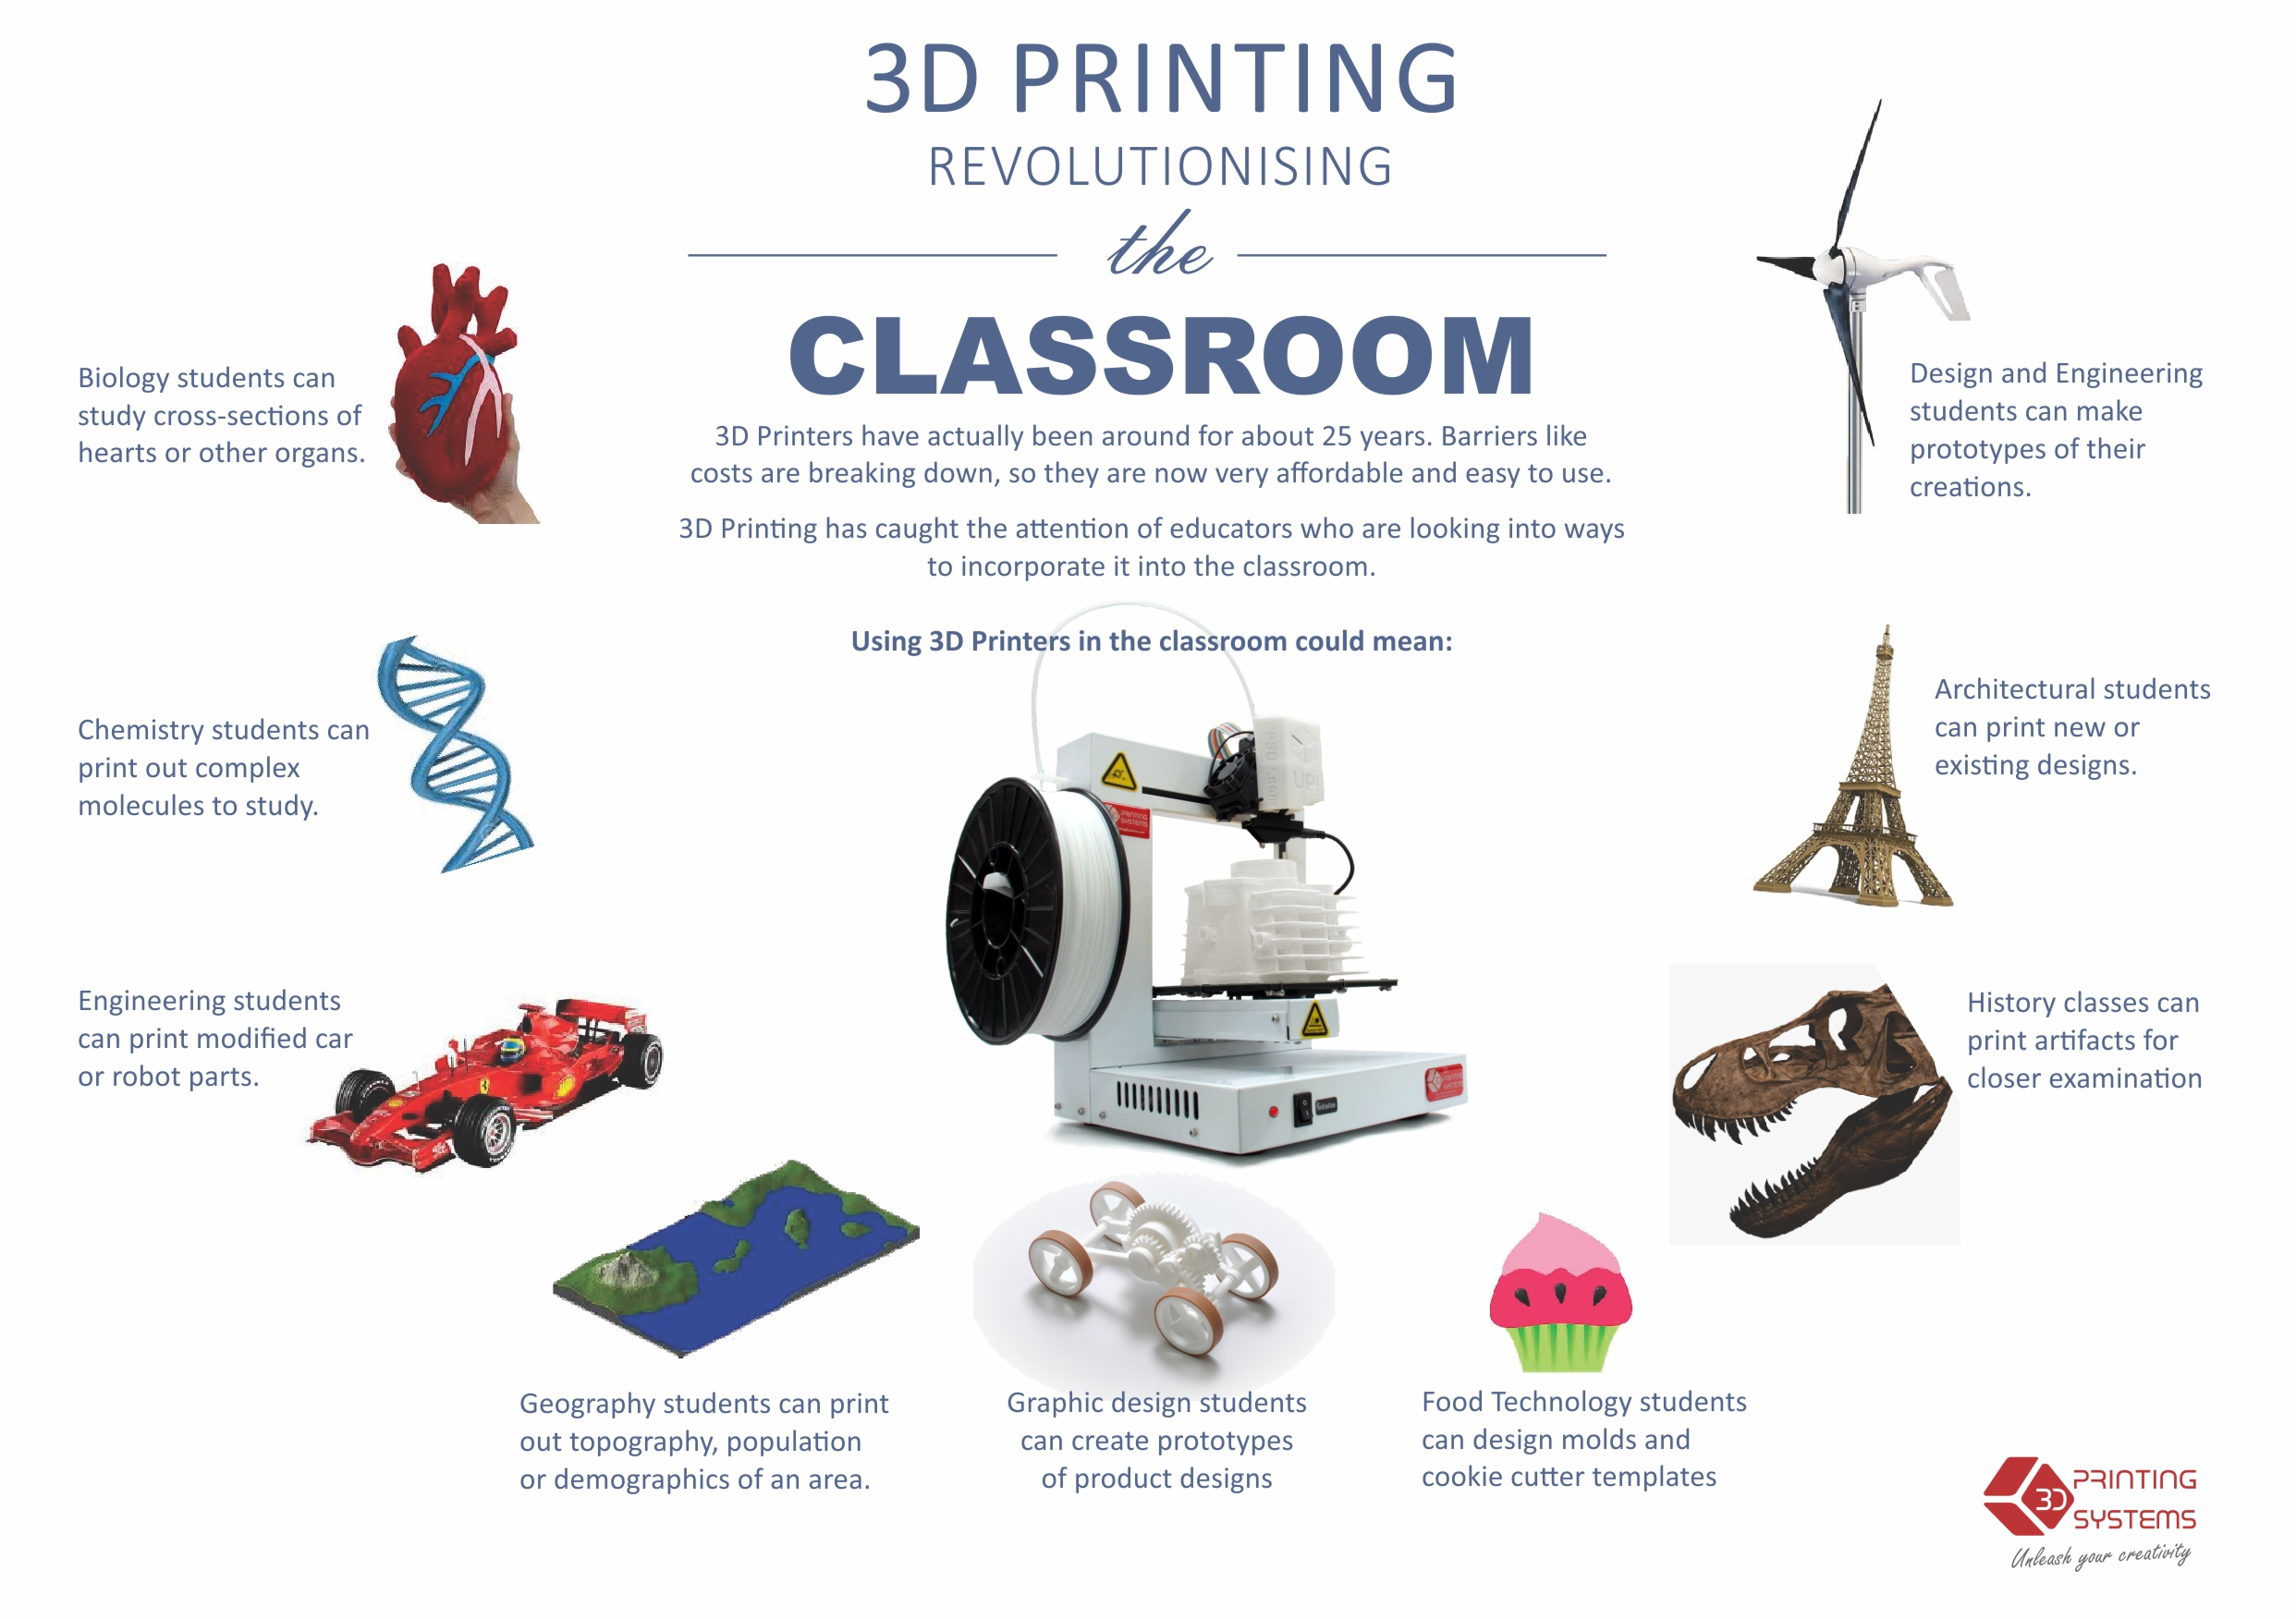 Why have 3D printers in the classroom?